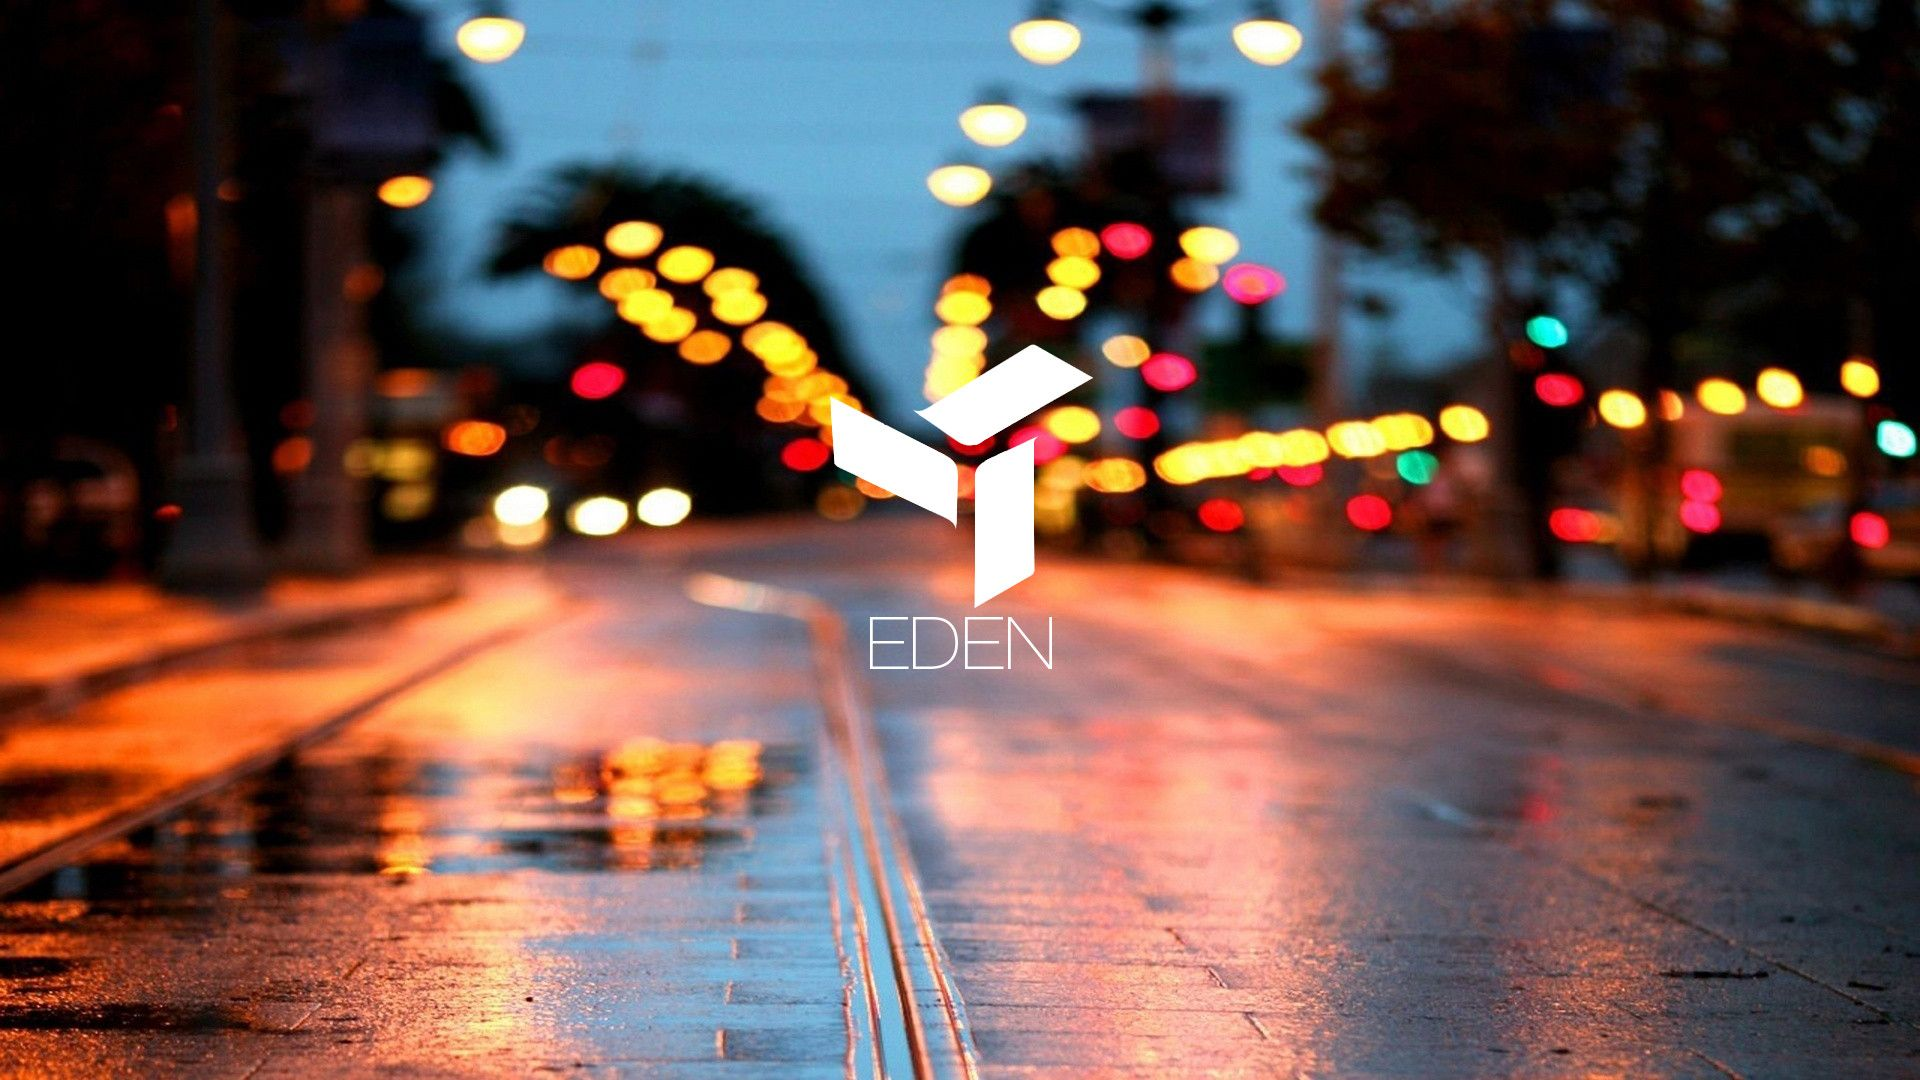 Created A Very Simple Eden 1920x1080 Wallpaper Thought You Might Like It Need Iphone 6s Plus Wallpaper City Lights Wallpaper City Wallpaper Lit Wallpaper